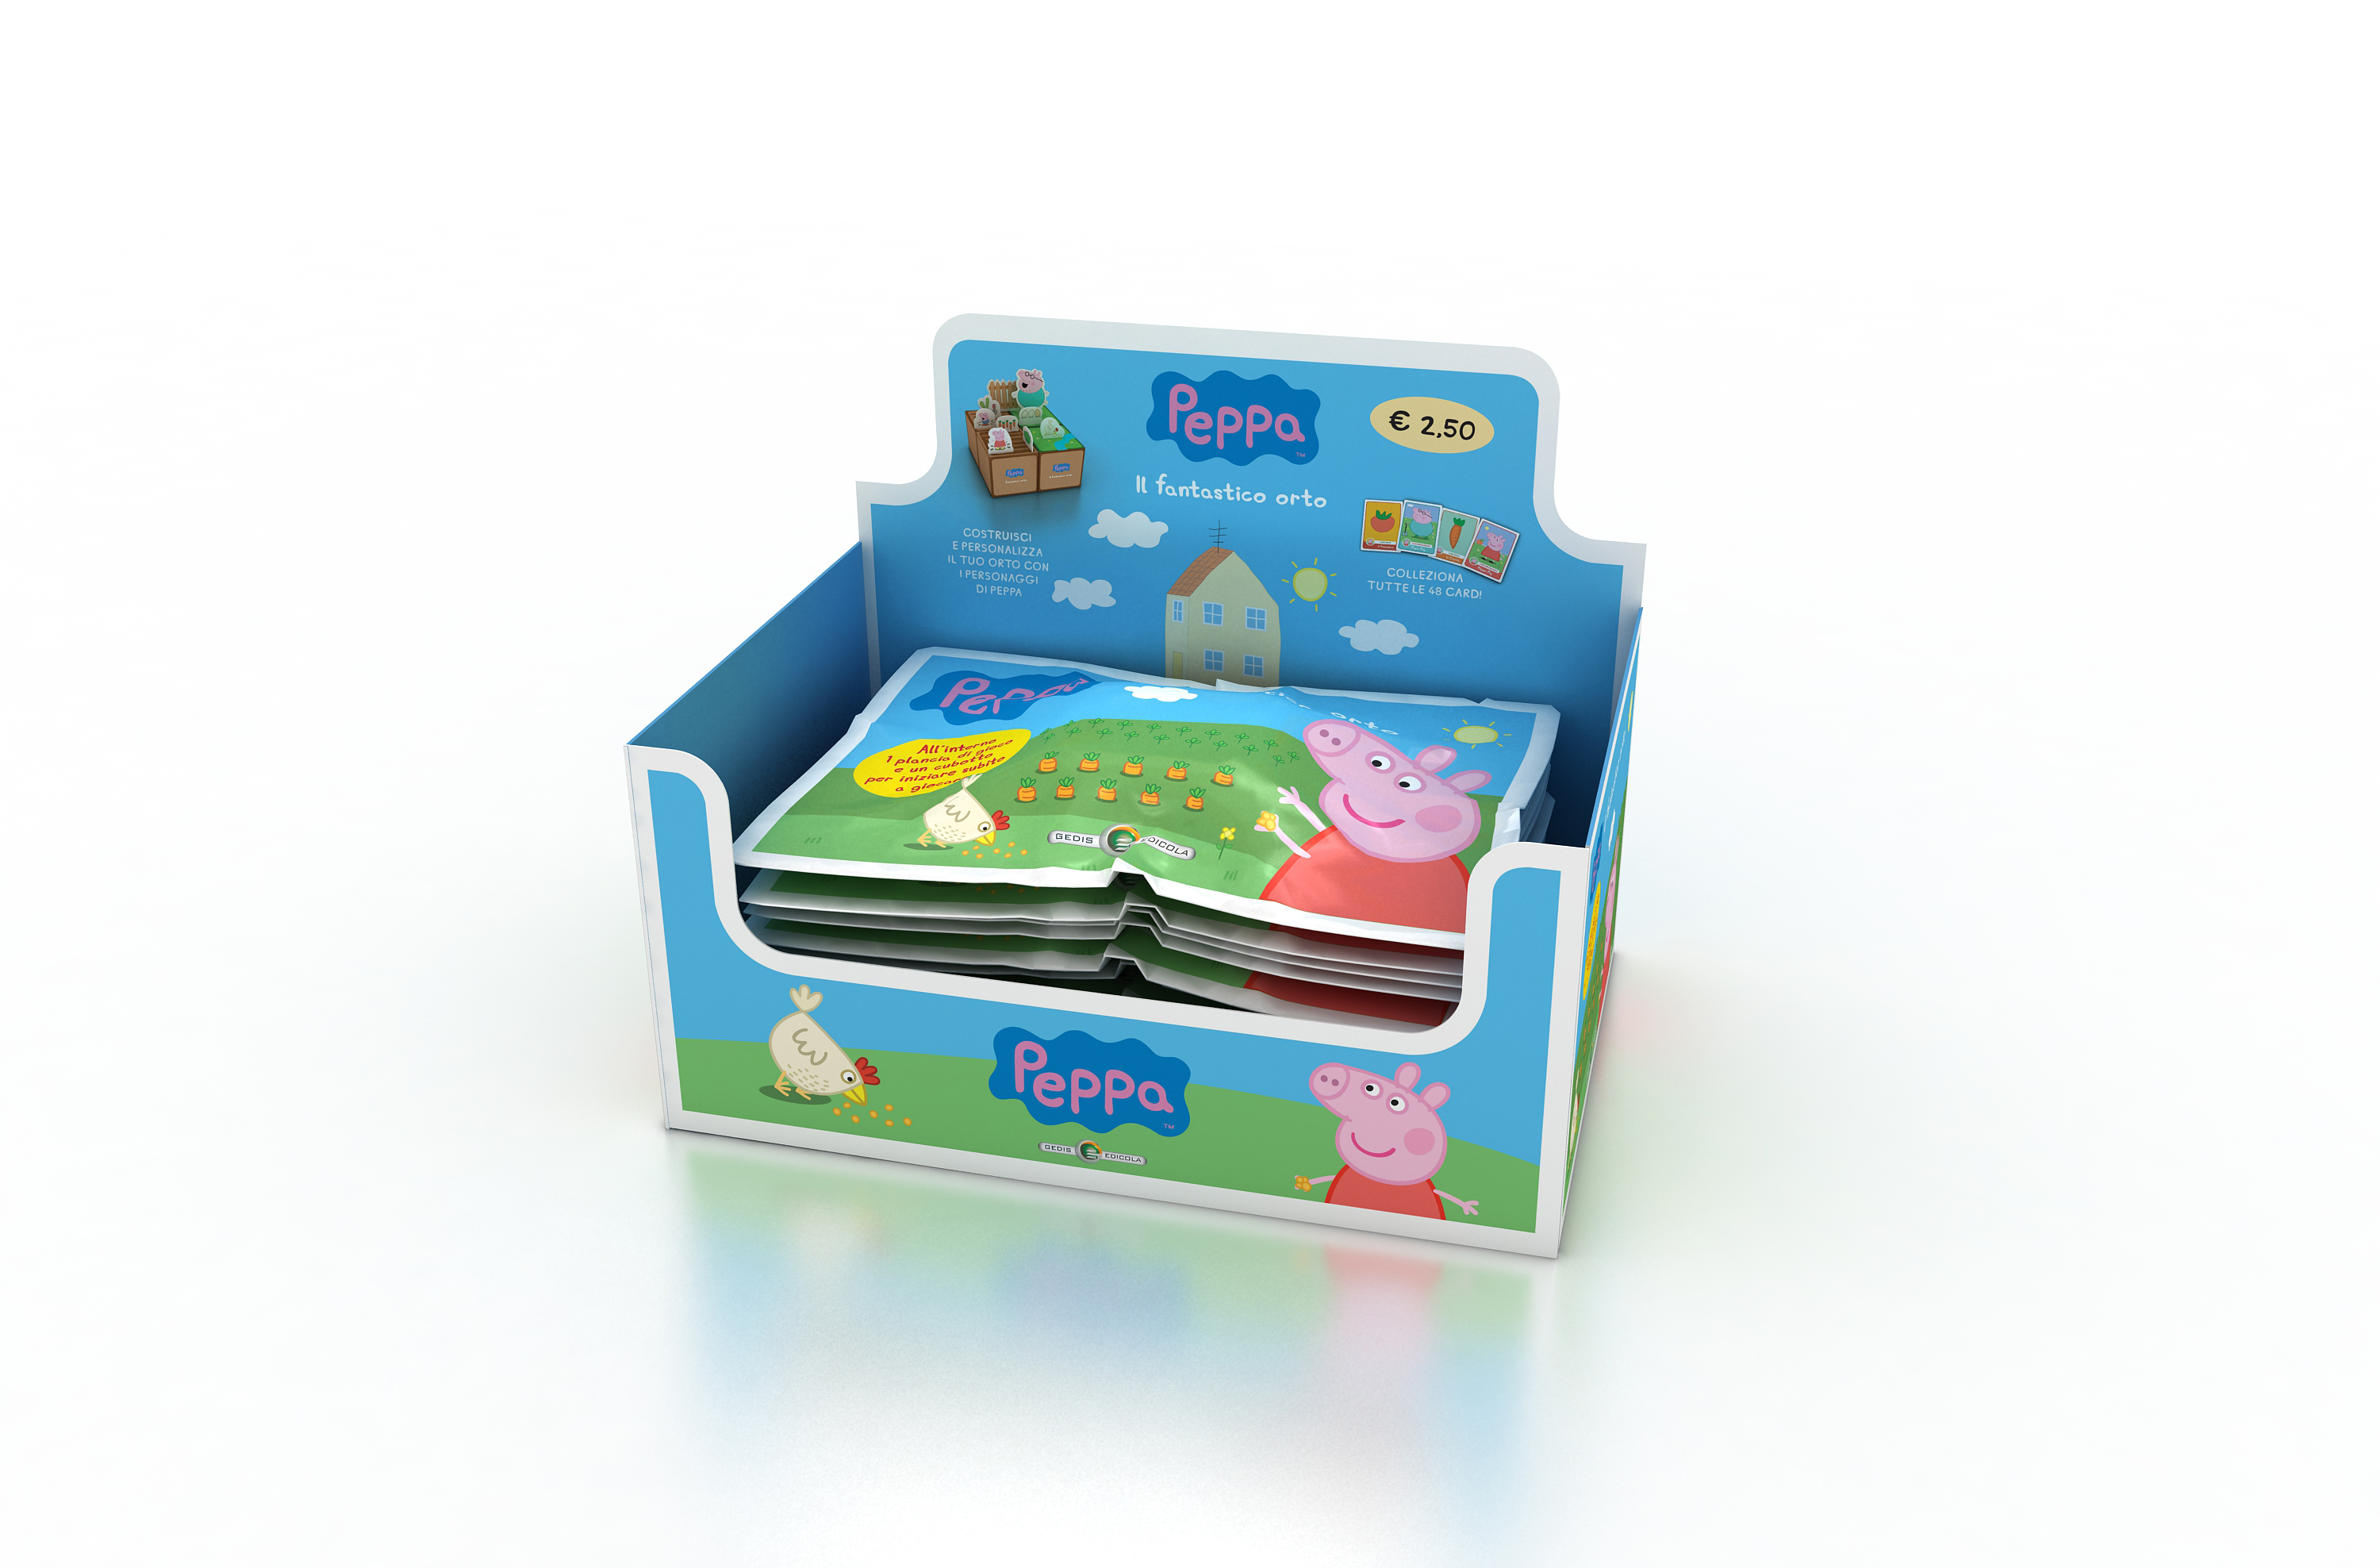 display_peppapig_hd